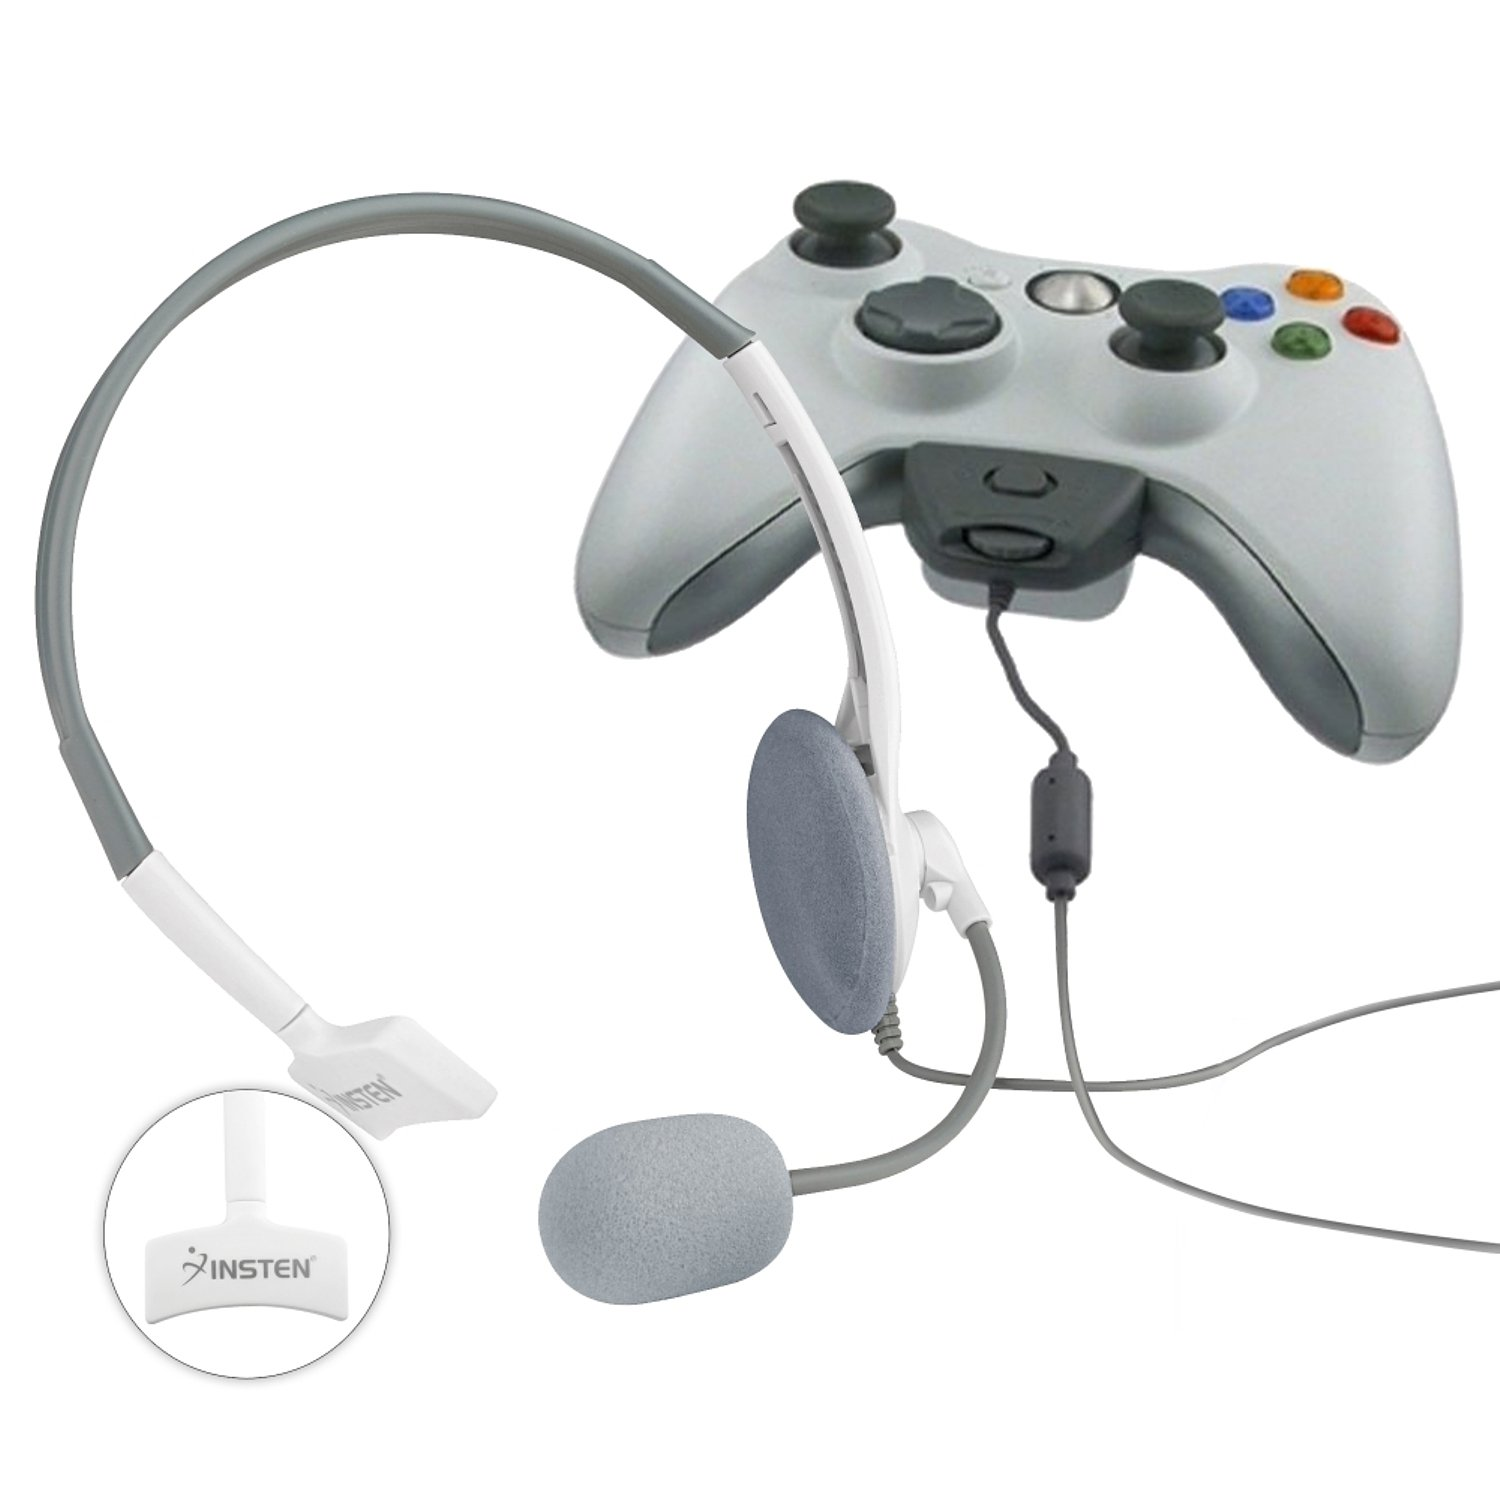 2 x Insten Live White Headset Headphone+Mic Compatible with Xbox 360 Wireless Controller by INSTEN